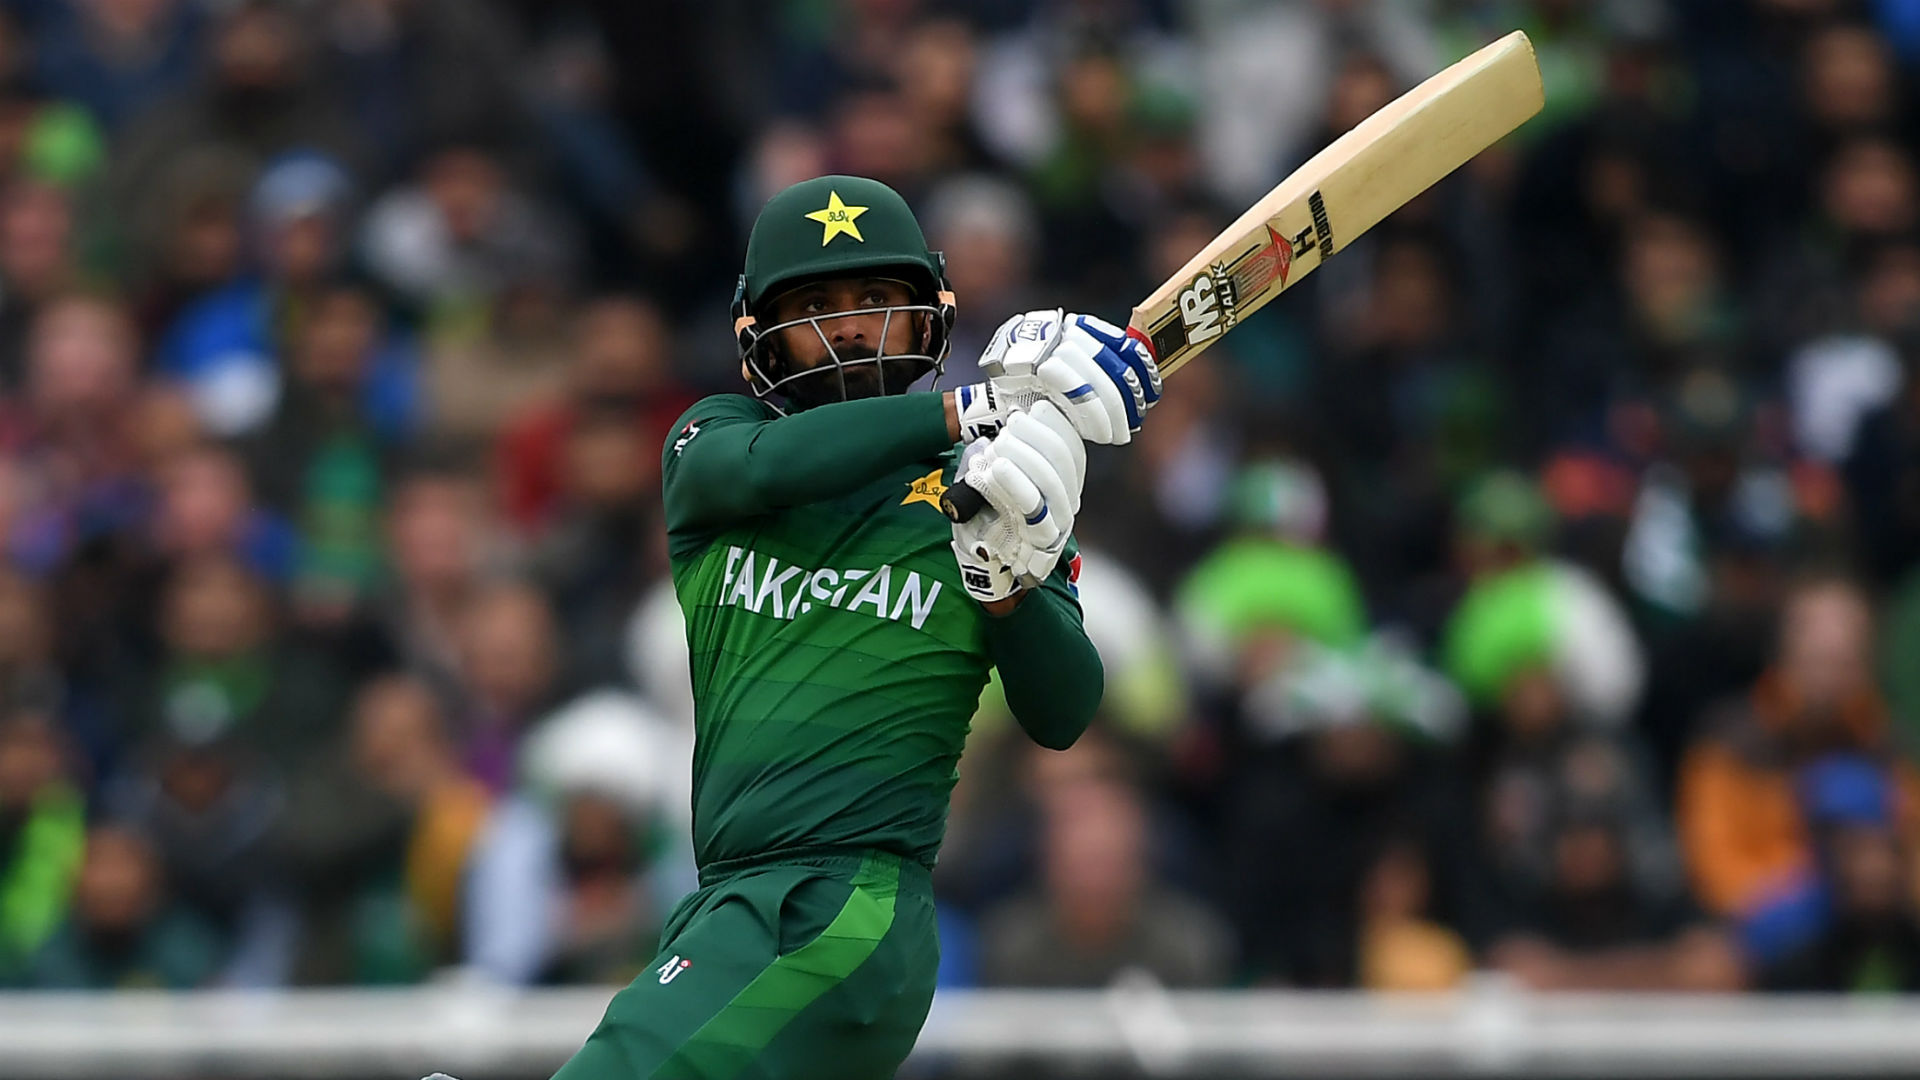 Hafeez to end Pakistan career after T20 World Cup